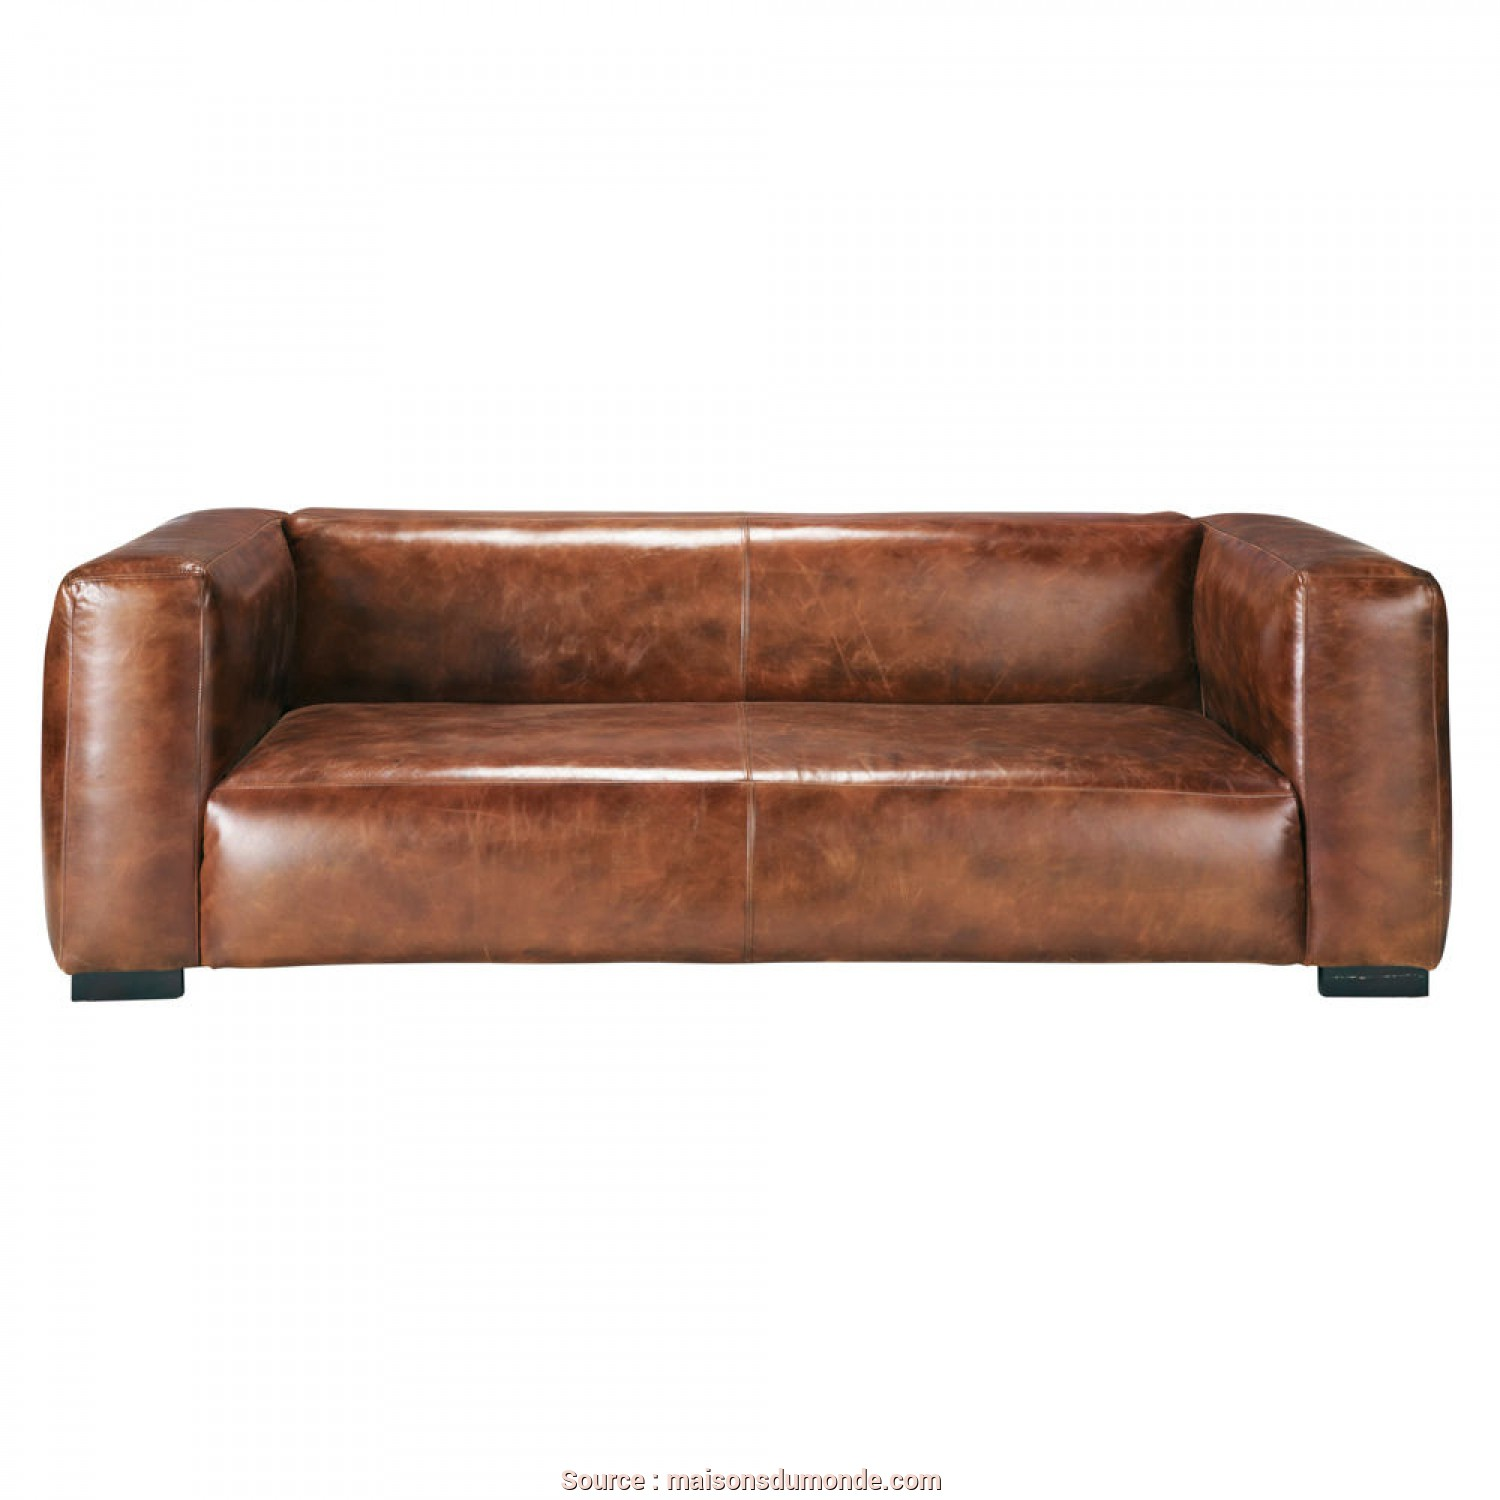 Divani Outdoor Maison Du Monde, Incredibile 3/4 Seater Leather Sofa In Brown, Maisons Du Monde